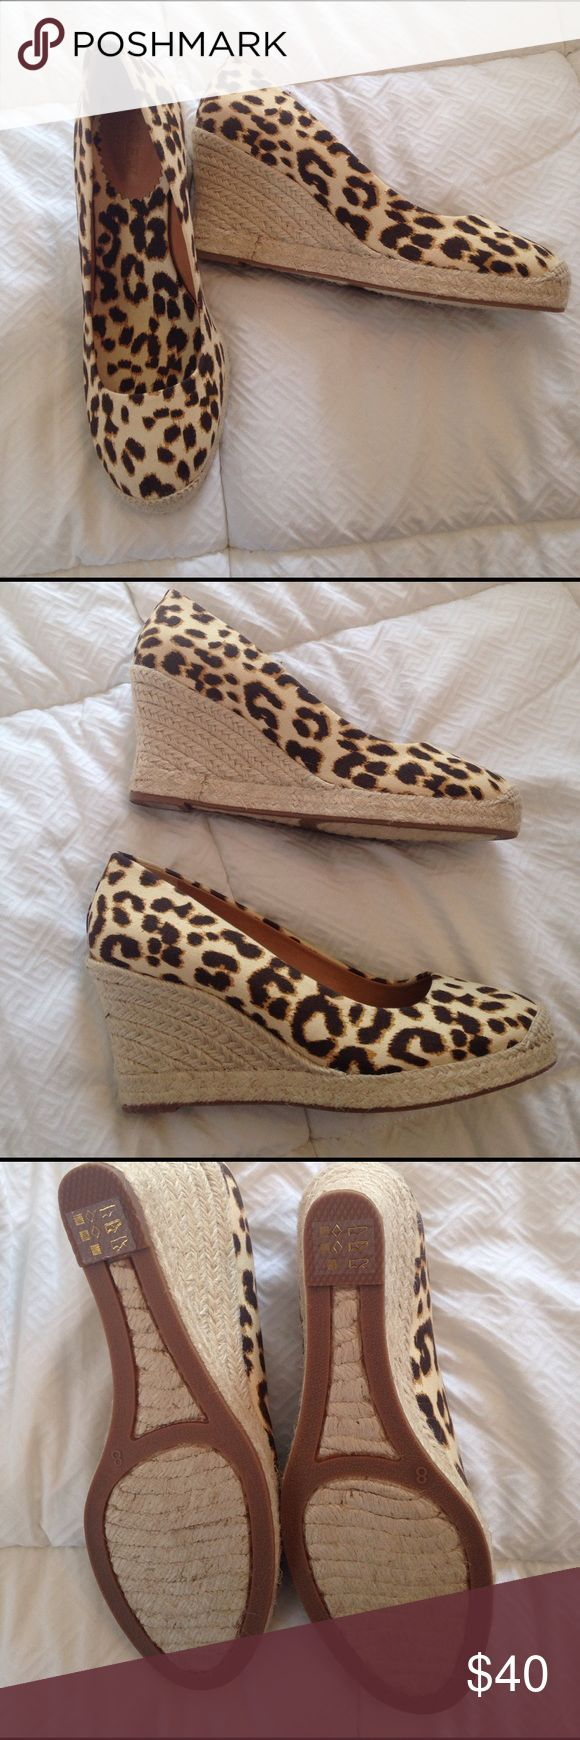 J Crew Outlet Fabric Espadrilles J Crew Outlet Fabric Espadrilles were never worn.  Fabric leopard print in size 8. Wedge heel is approx 3 3/4 high. No box. J. Crew Shoes Espadrilles